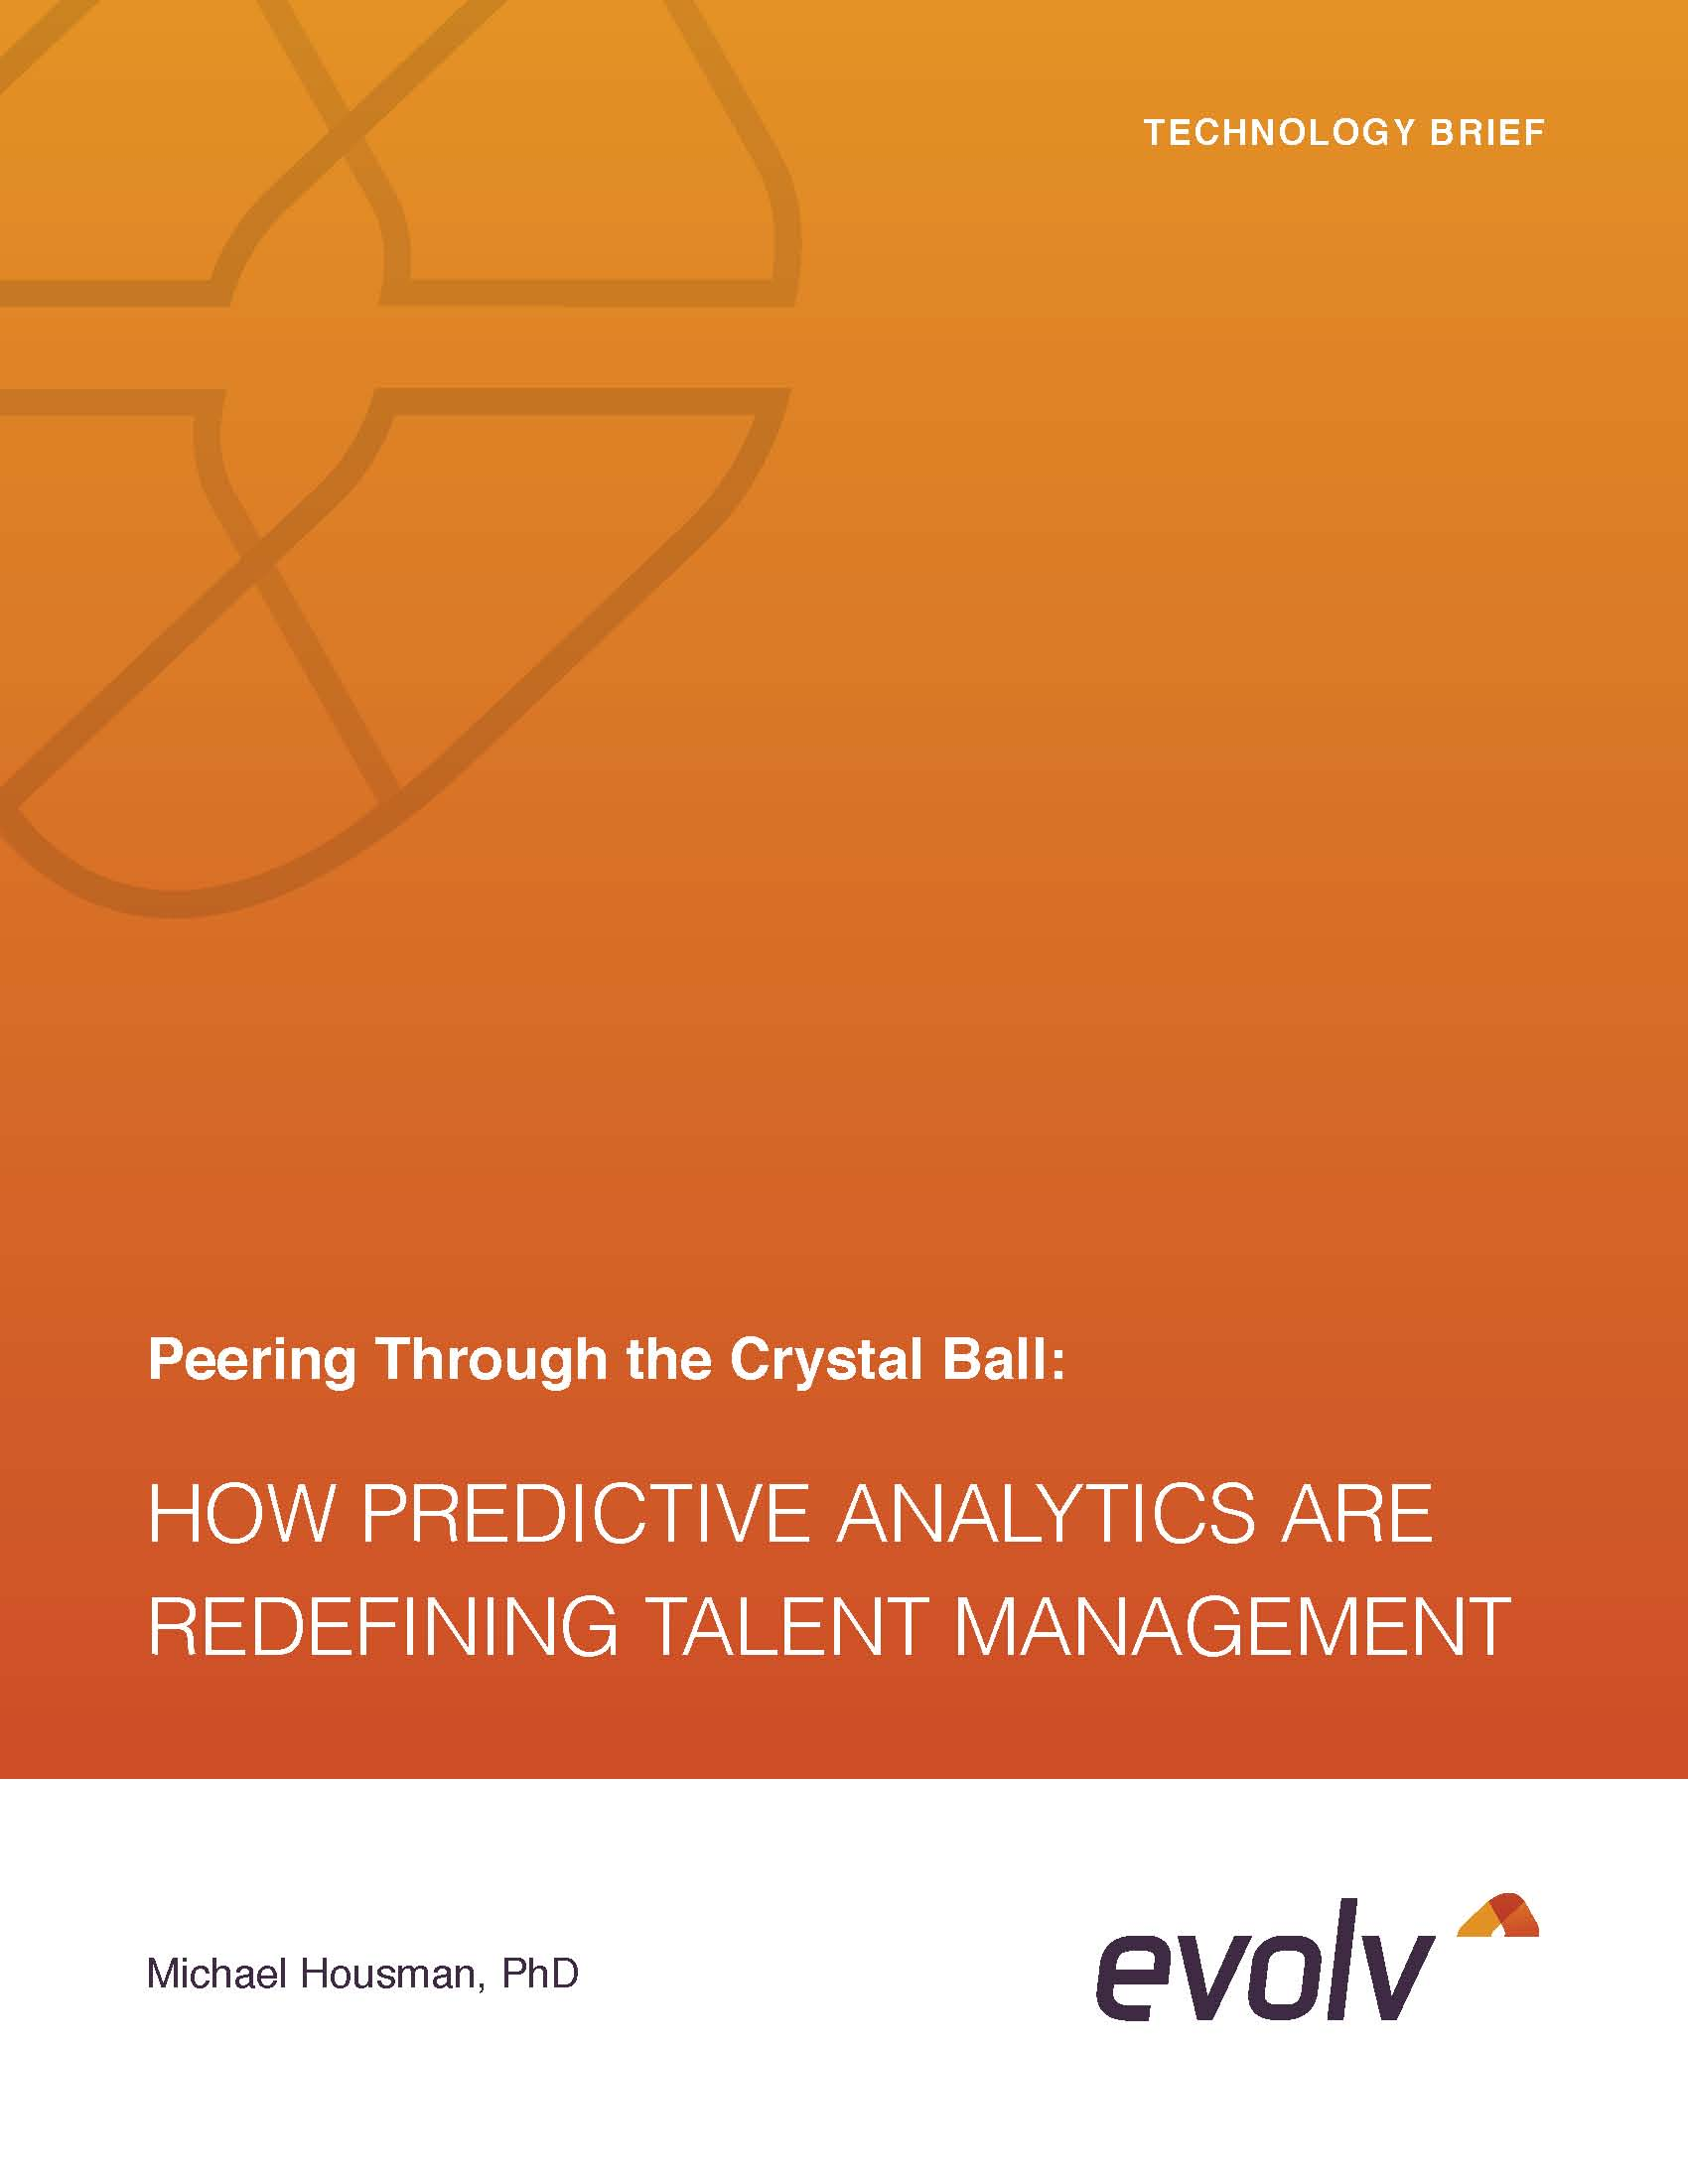 Peering Through the Crystal Ball: How Predictive Analytics Are Redefining Talent Management